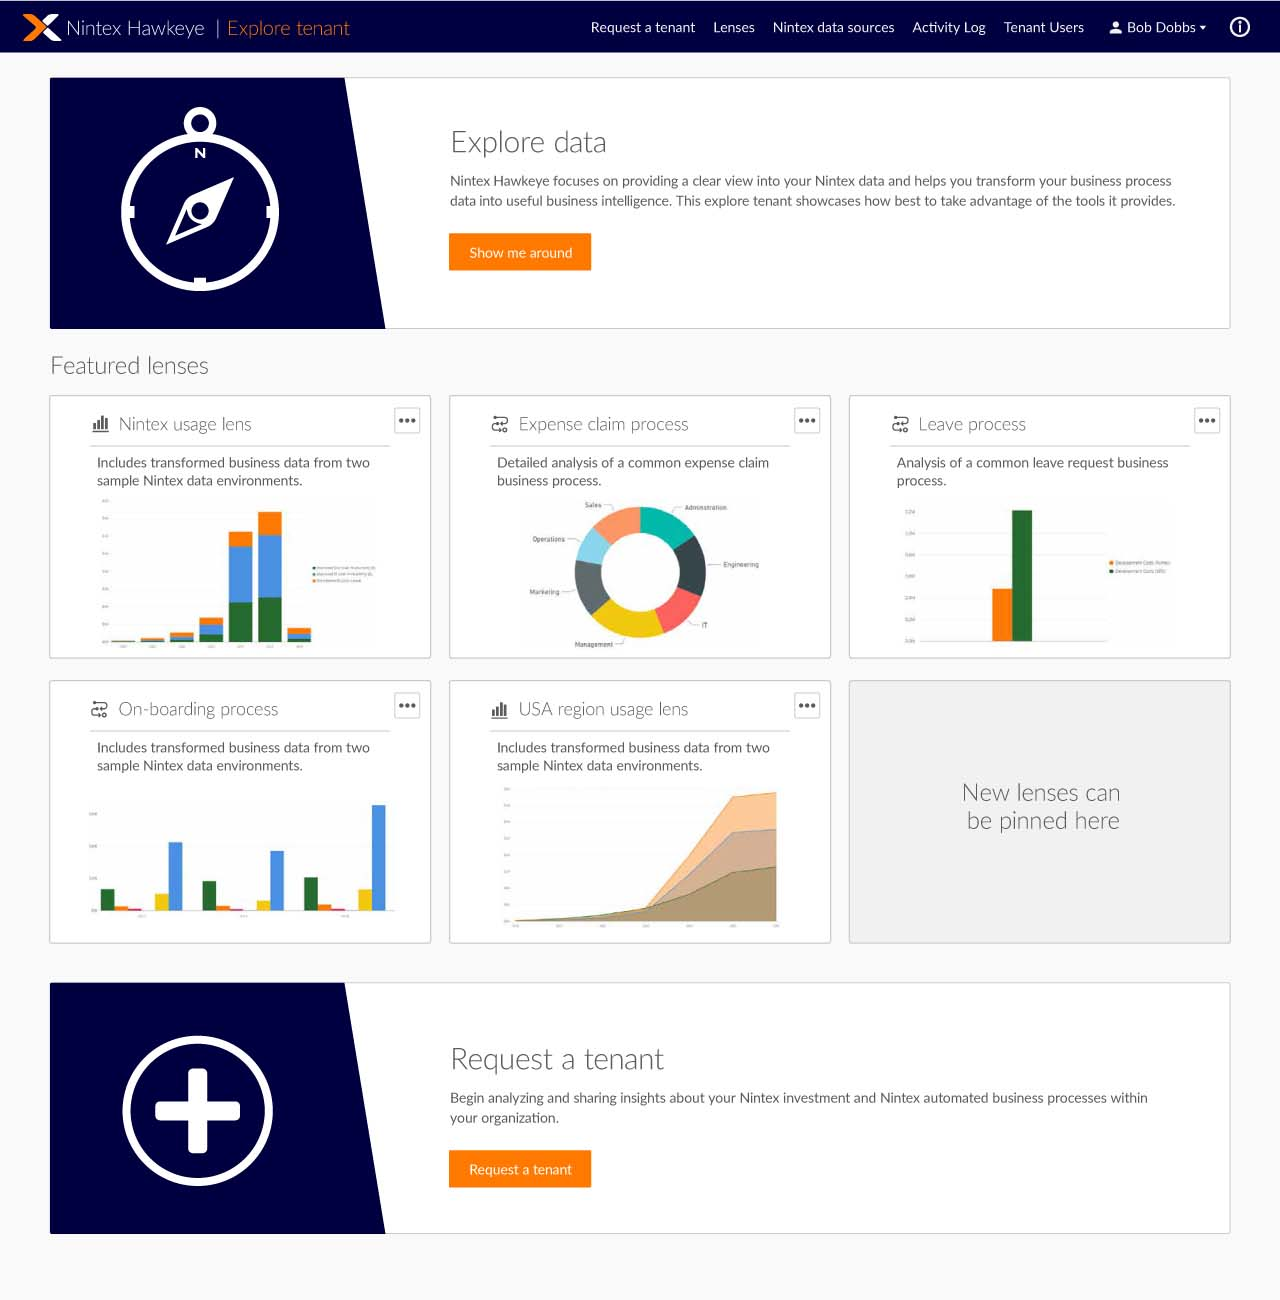 Nintex Hawkeye's Explorer Tenant features pre-populated processes so users can experience sample data and dashboards.